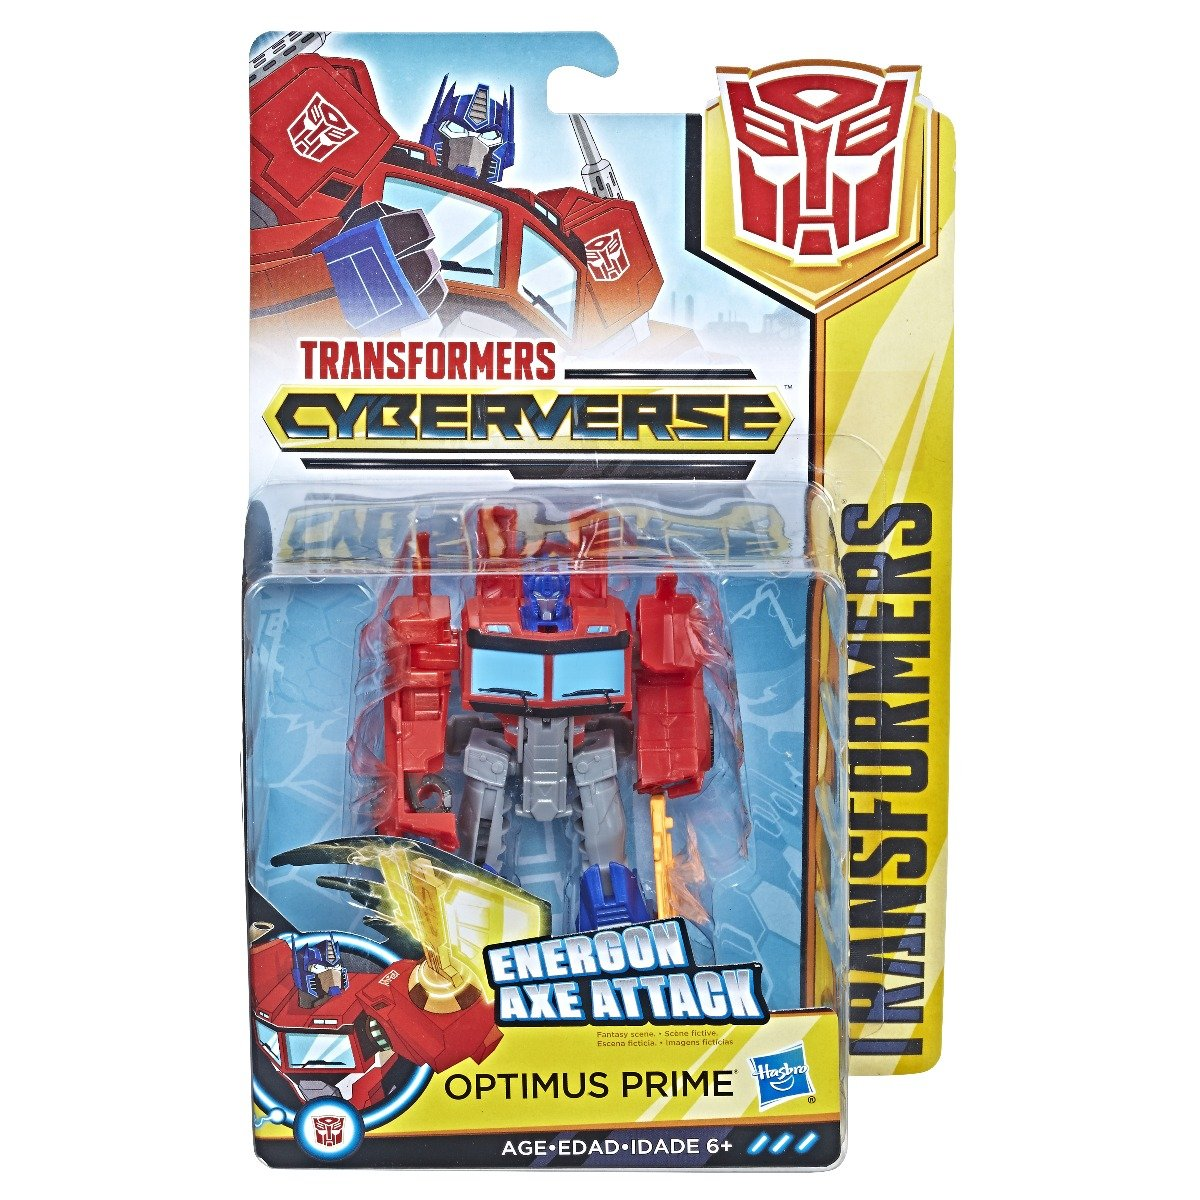 Figurina Transformers Cyberverse Action Attackers Warrior Optimus Prime